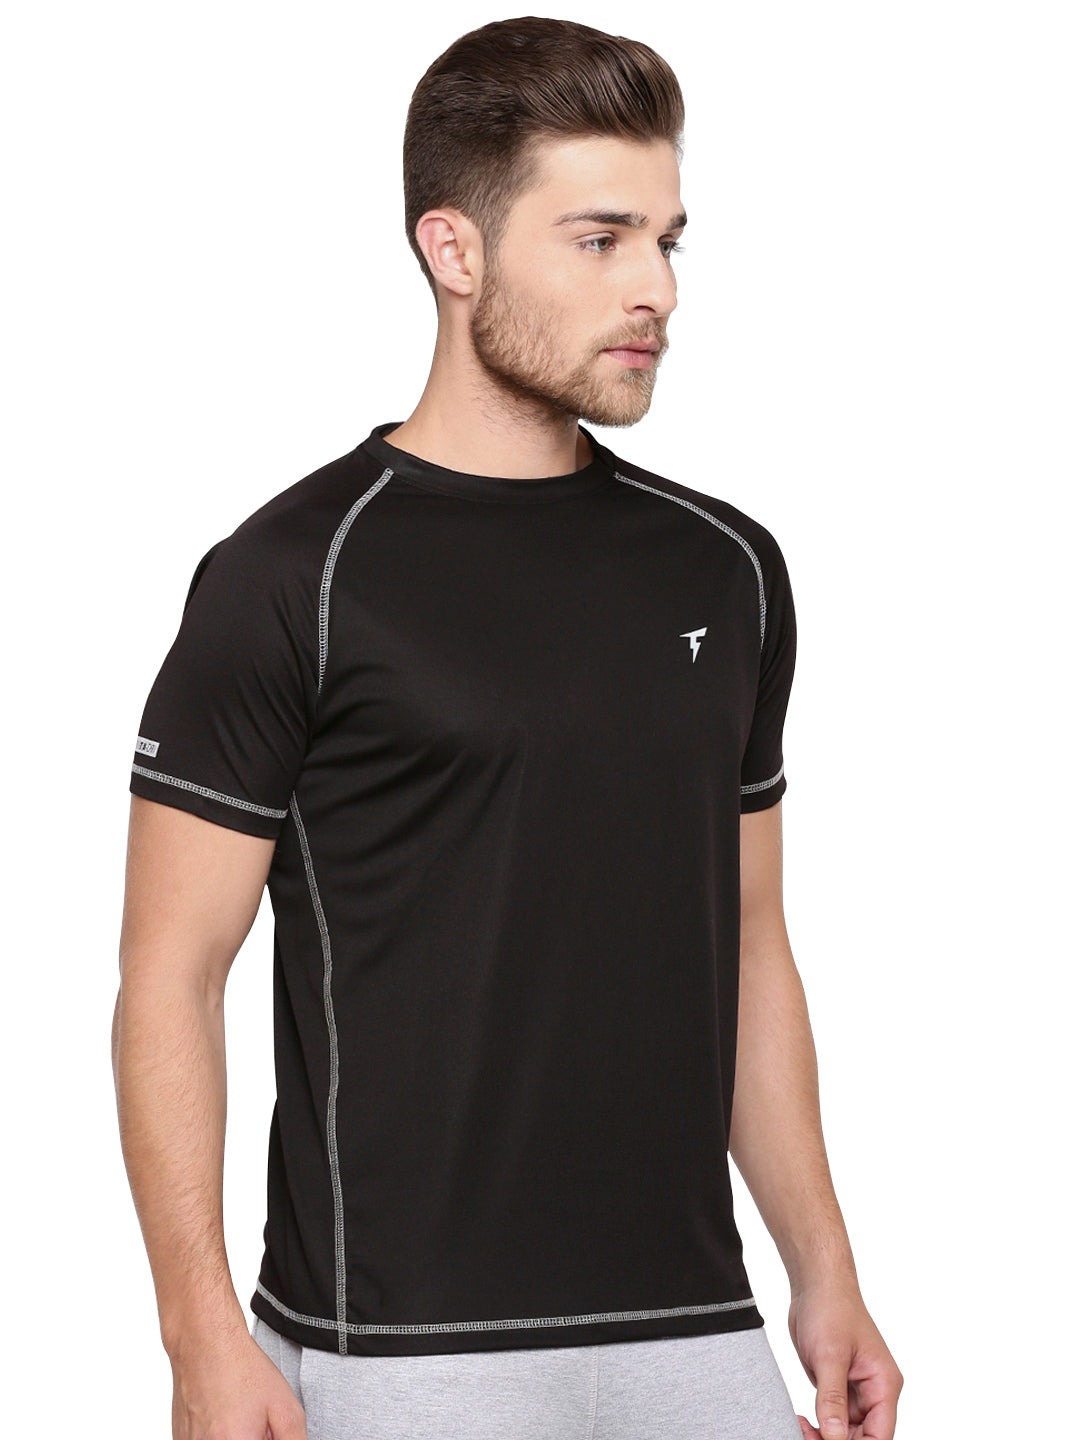 The Raglan Sleeve Athletic Tee - Black